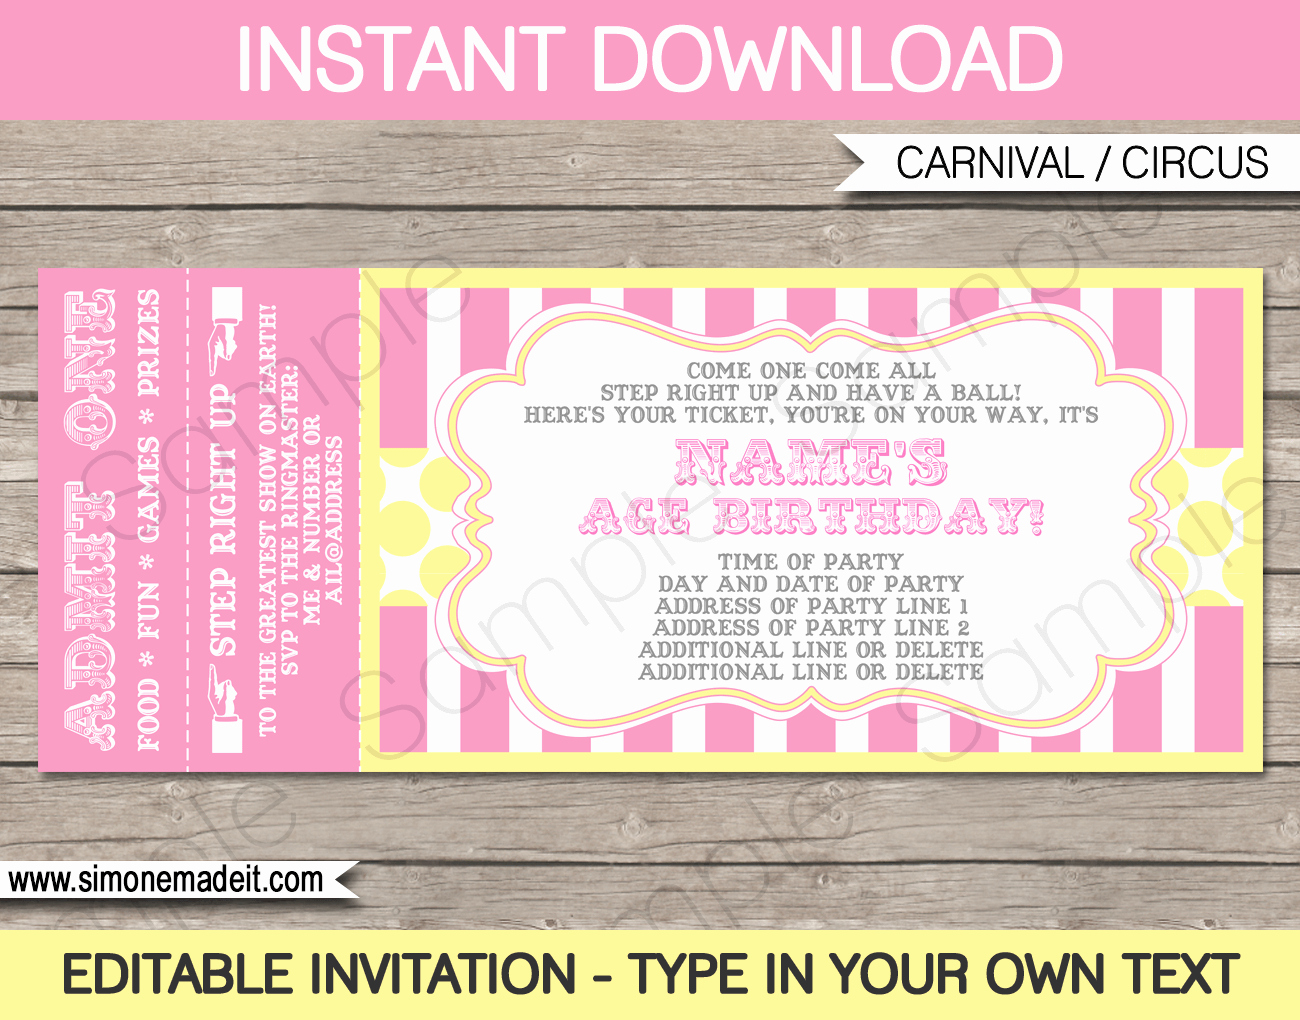 Carnival Ticket Invitation Template Free New Carnival Birthday Ticket Invitations Template